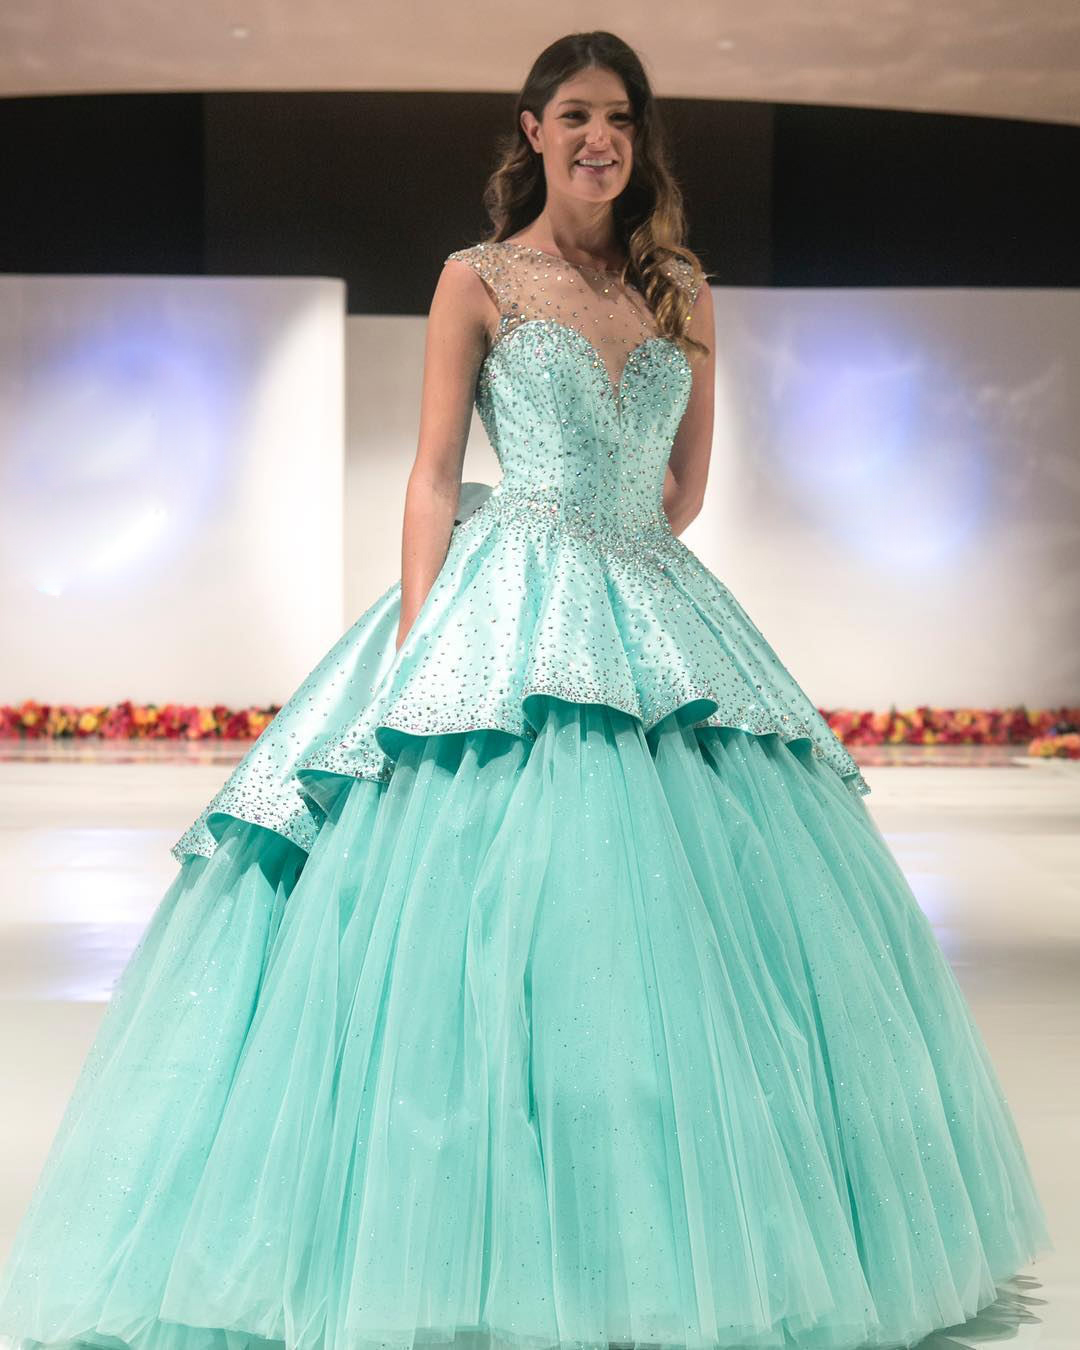 ba84b9139ba Glitter Mint Quinceanera Dresses Beaded Satin Puffy Tulle Sweet 16 Party  Ball Gowns on Luulla